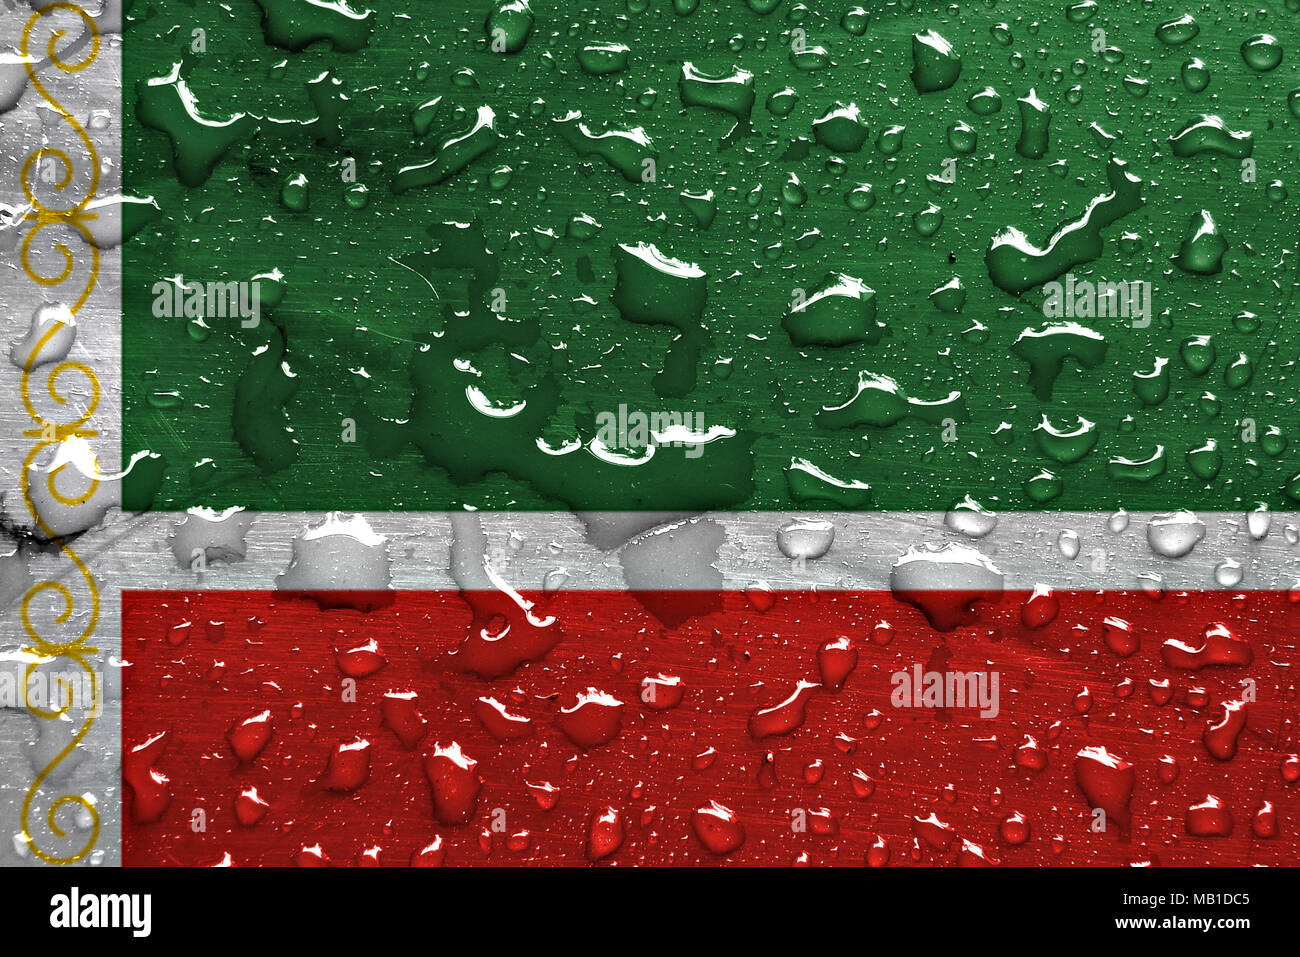 flag of Chechnya with rain drops - Stock Image